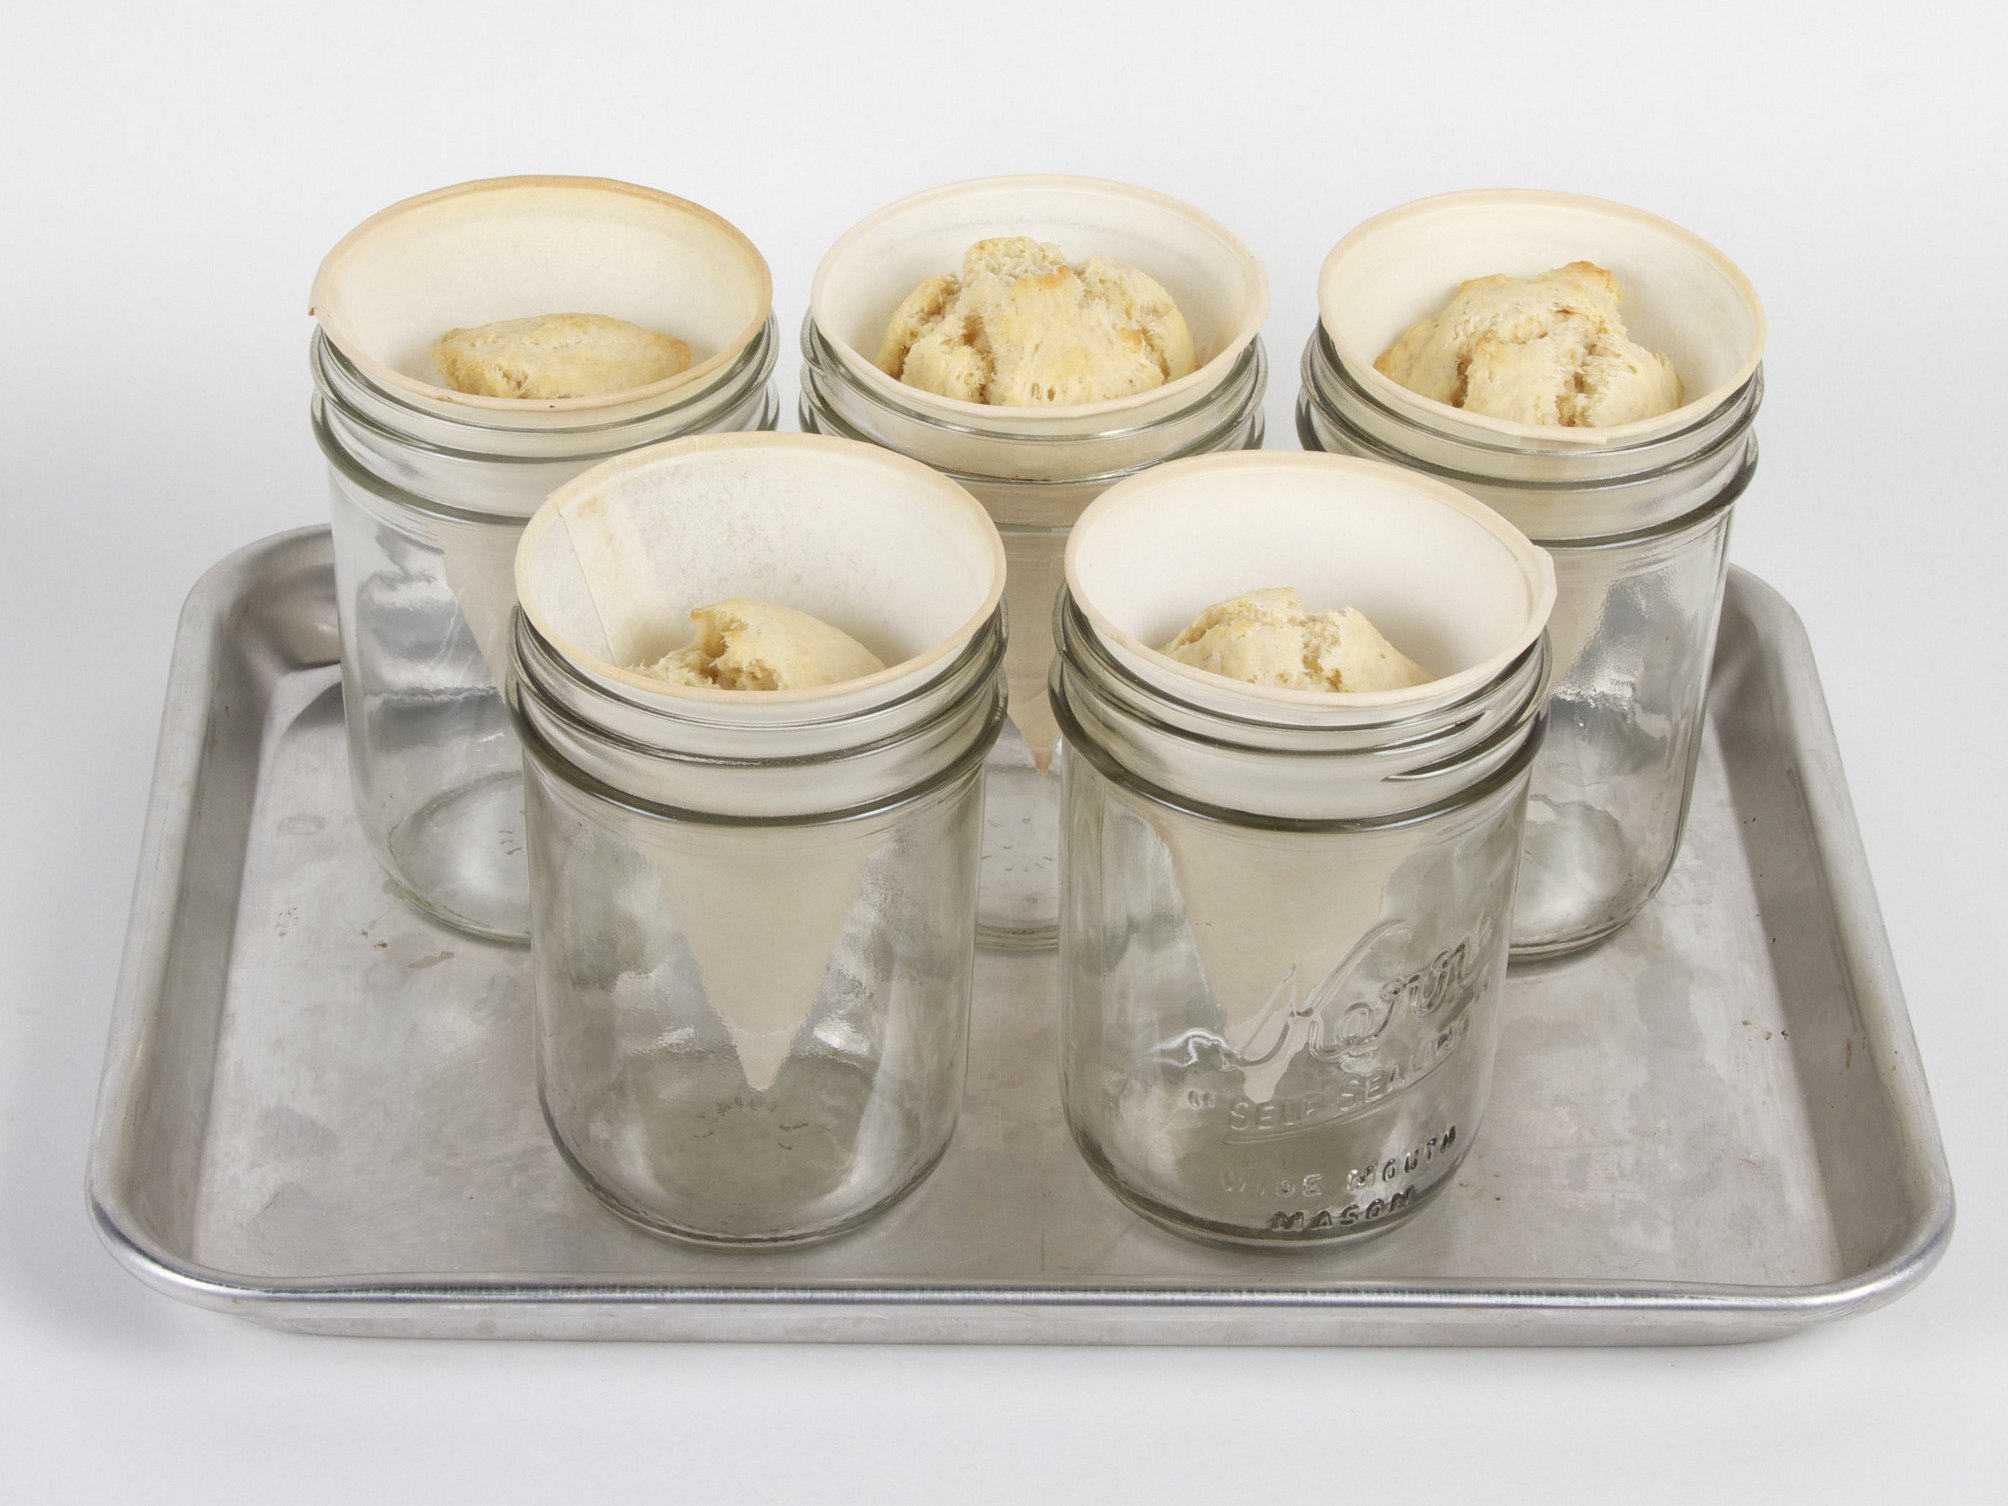 To create the cone-shaped scones, you'll need to use conical water cooler cups as baking wrappers. These scones were placed in canning jars to hold them upright during baking. For full baking instructions, see here.